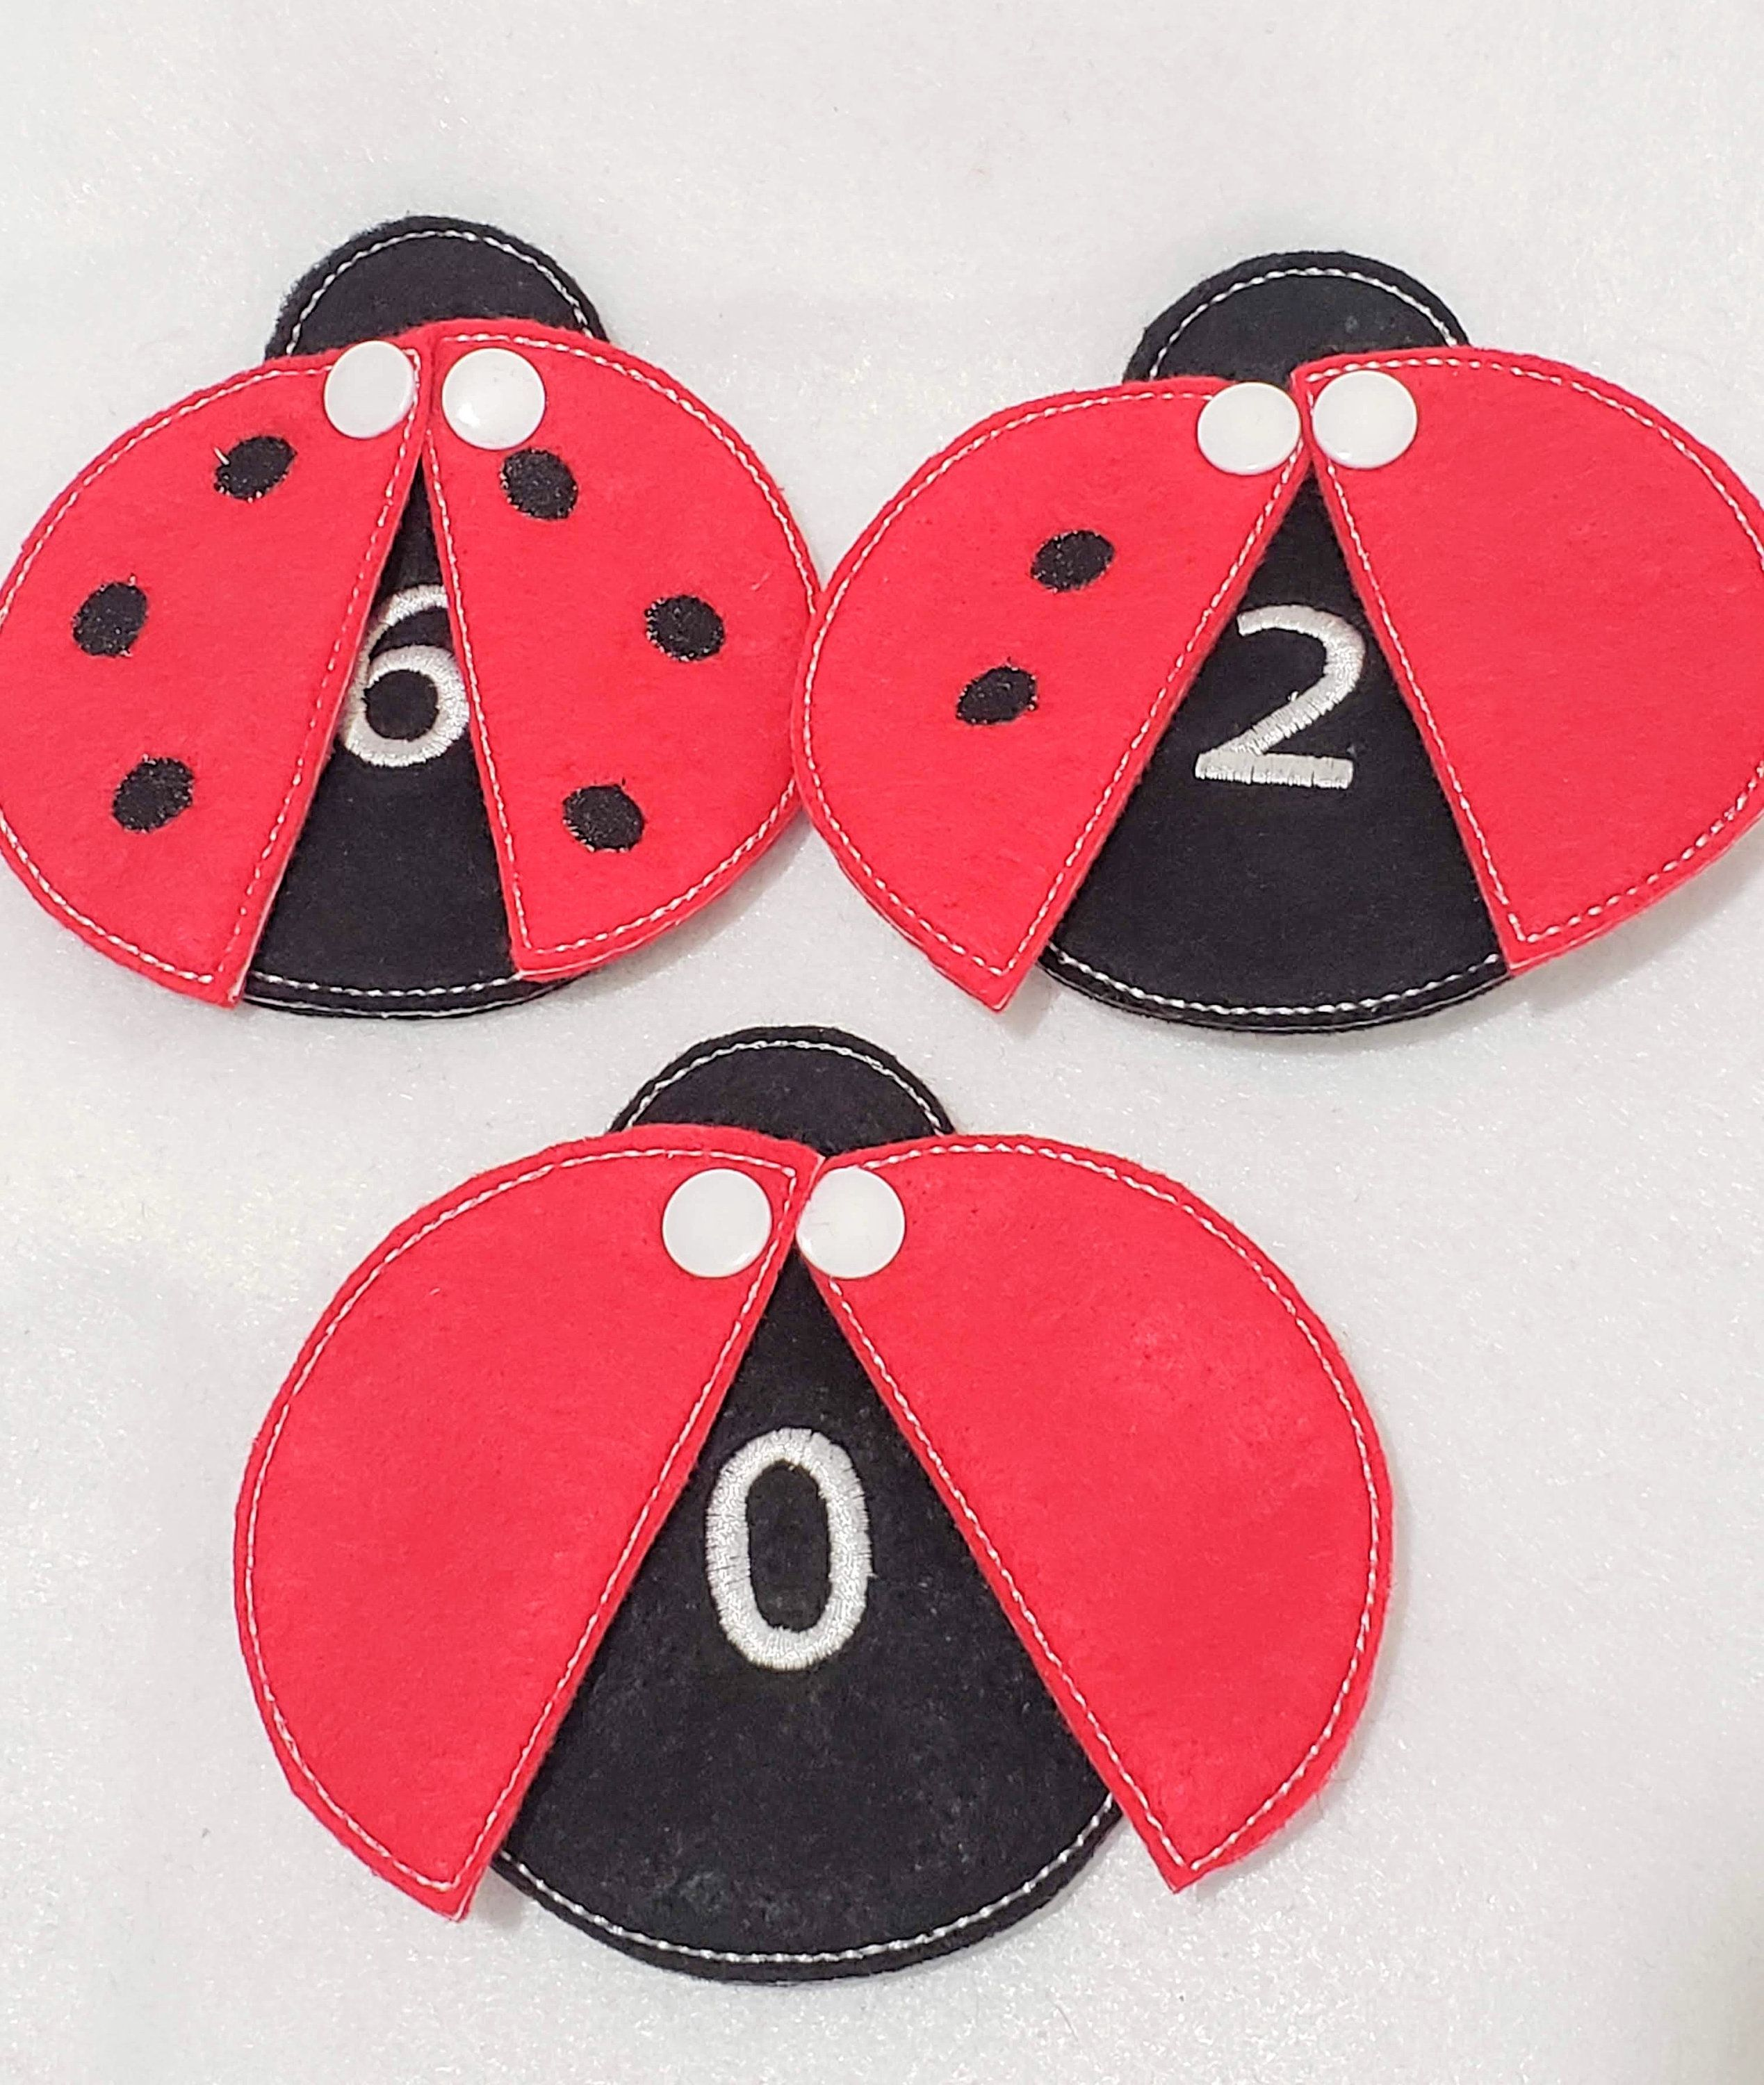 Lady Bug Counting Game Toddler Busy Bag Fabric Activity